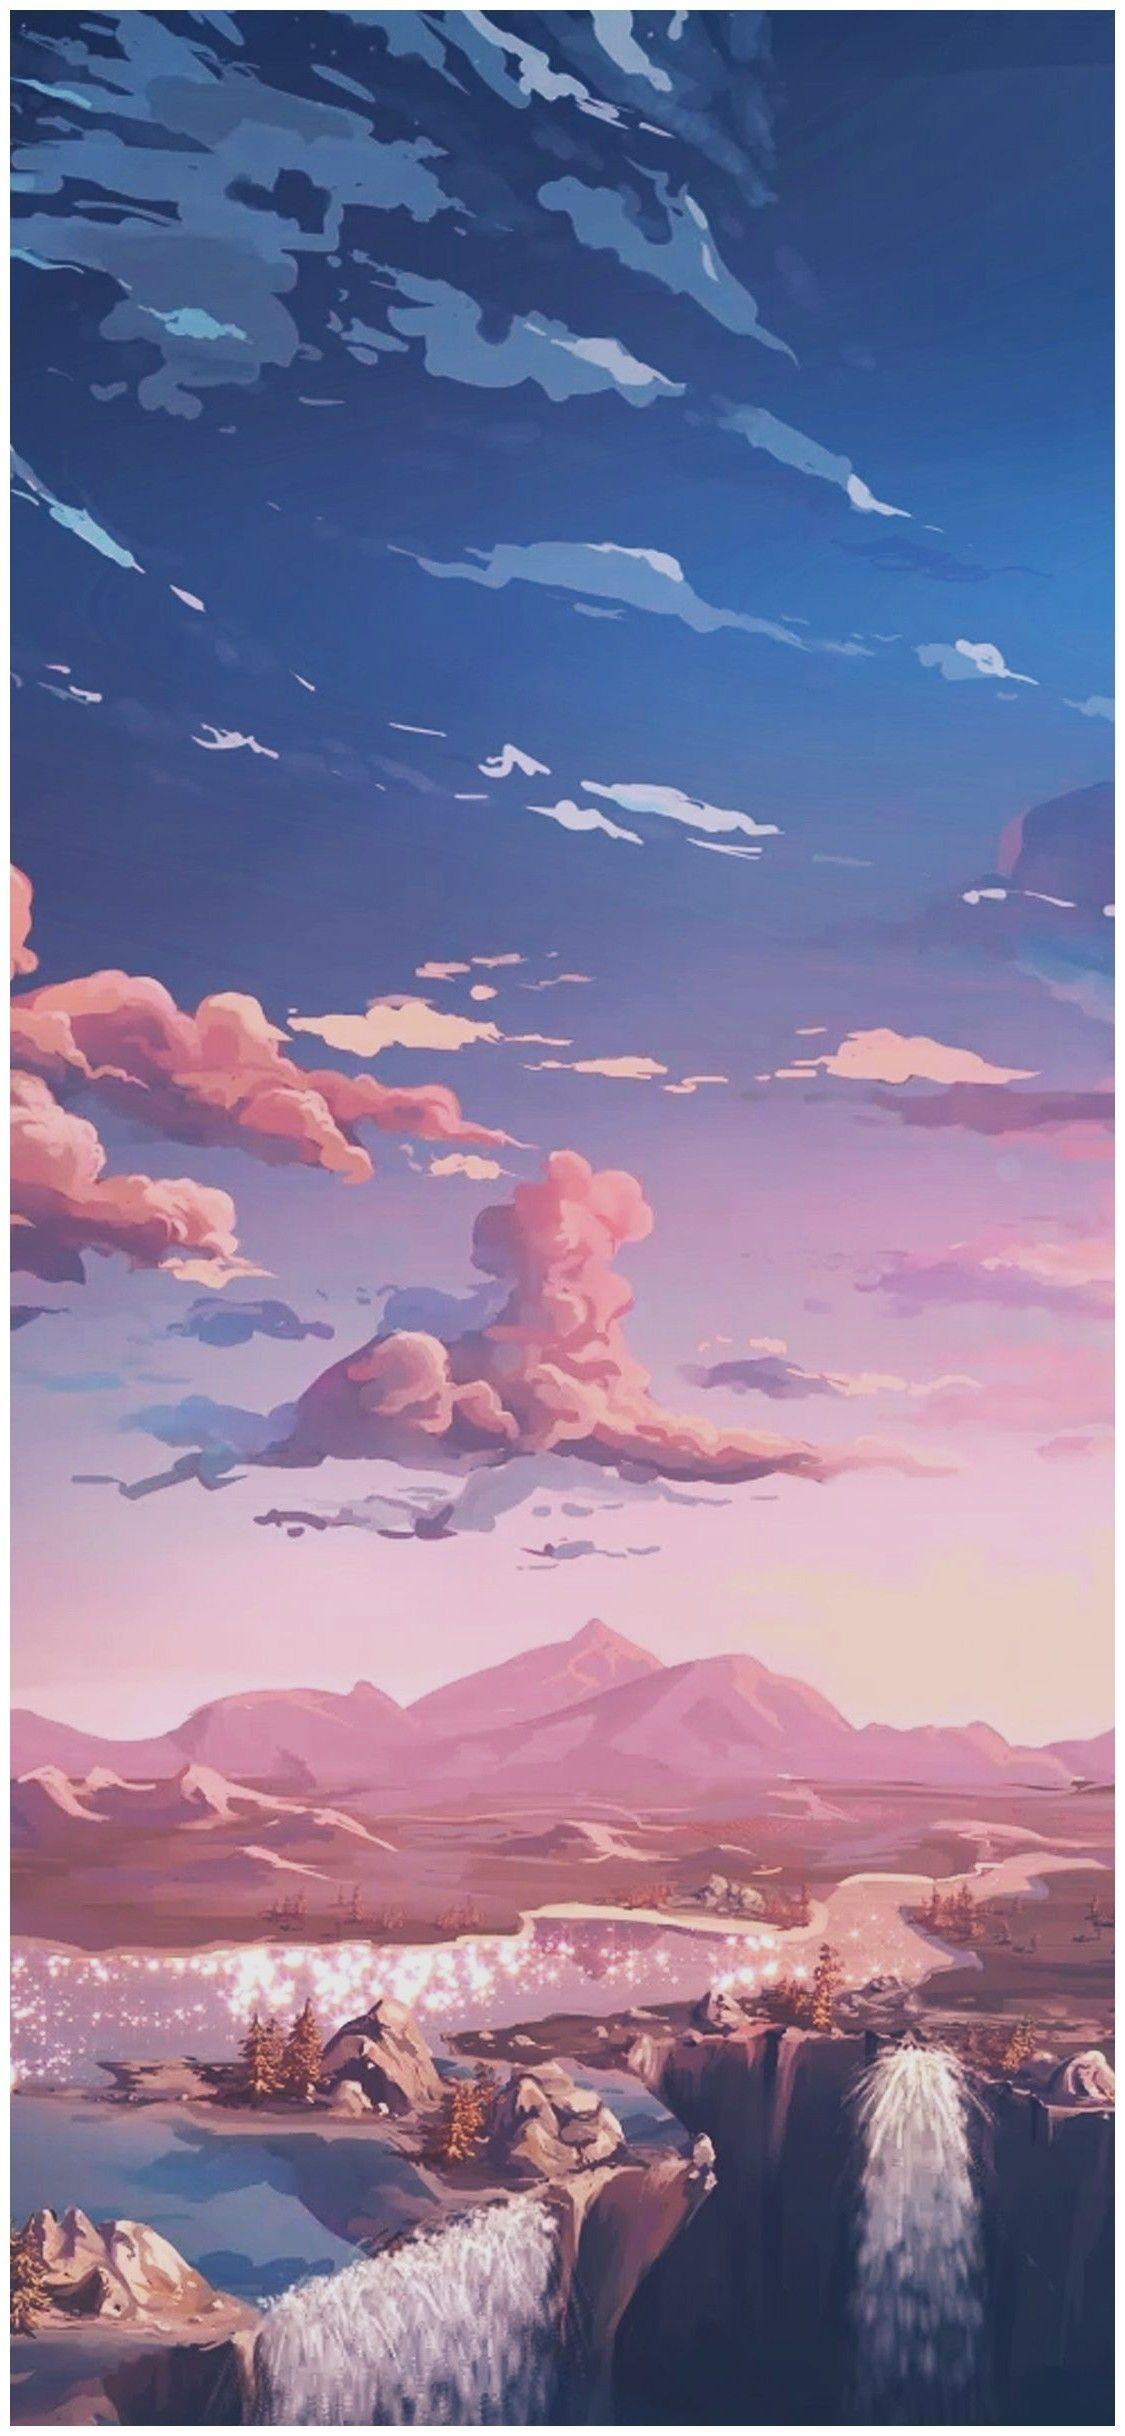 Aesthetic Pink Anime Wallpapers Top Free Aesthetic Pink Anime Anime Wallpaper Iphone Anime Scenery Wallpaper Aesthetic Backgrounds